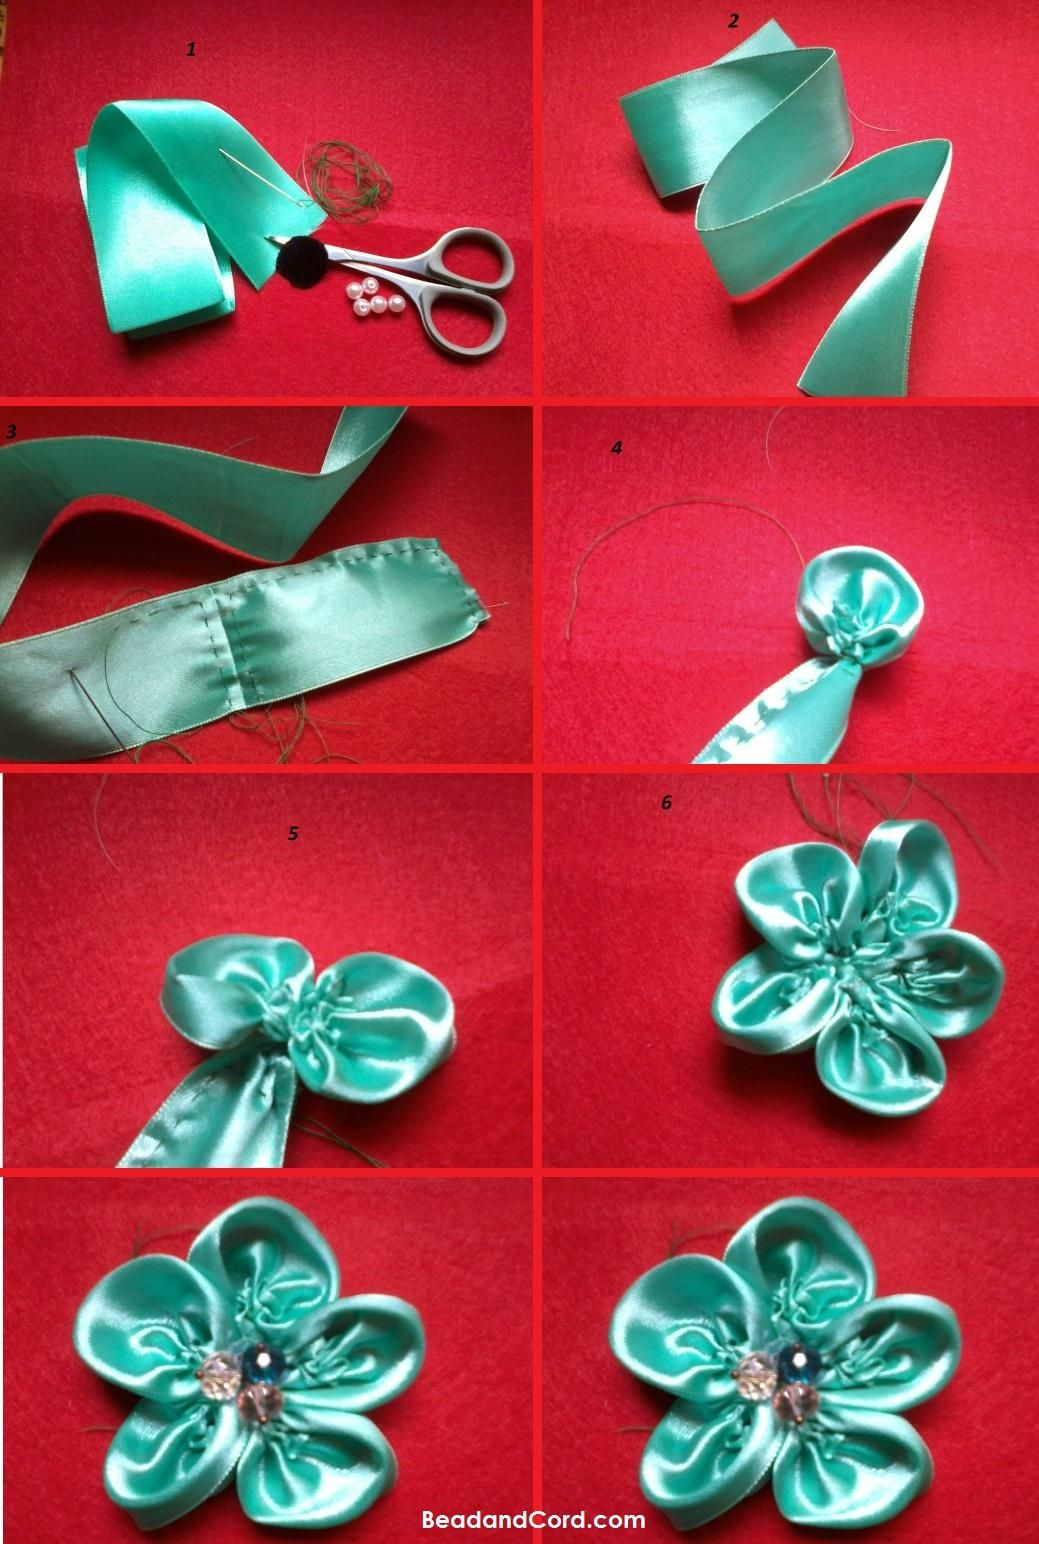 How to make ribbon flowers for hair | Hair Bows Step By ... |How To Make Handmade Flowers From Ribbon Step By Step